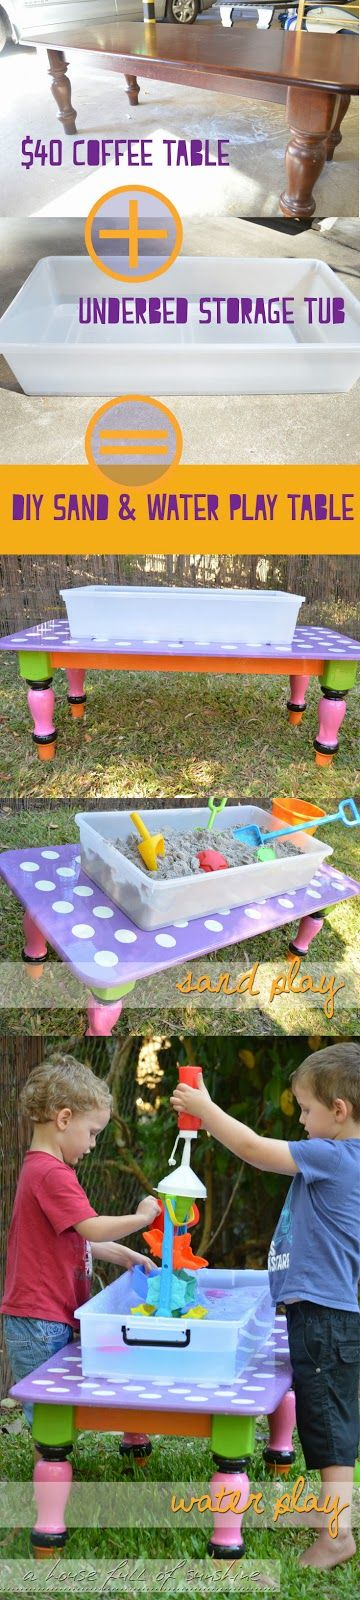 Using an old coffee table and the Polka Dot Stencil from Cutting Edge Stencils to create a play table for kids.